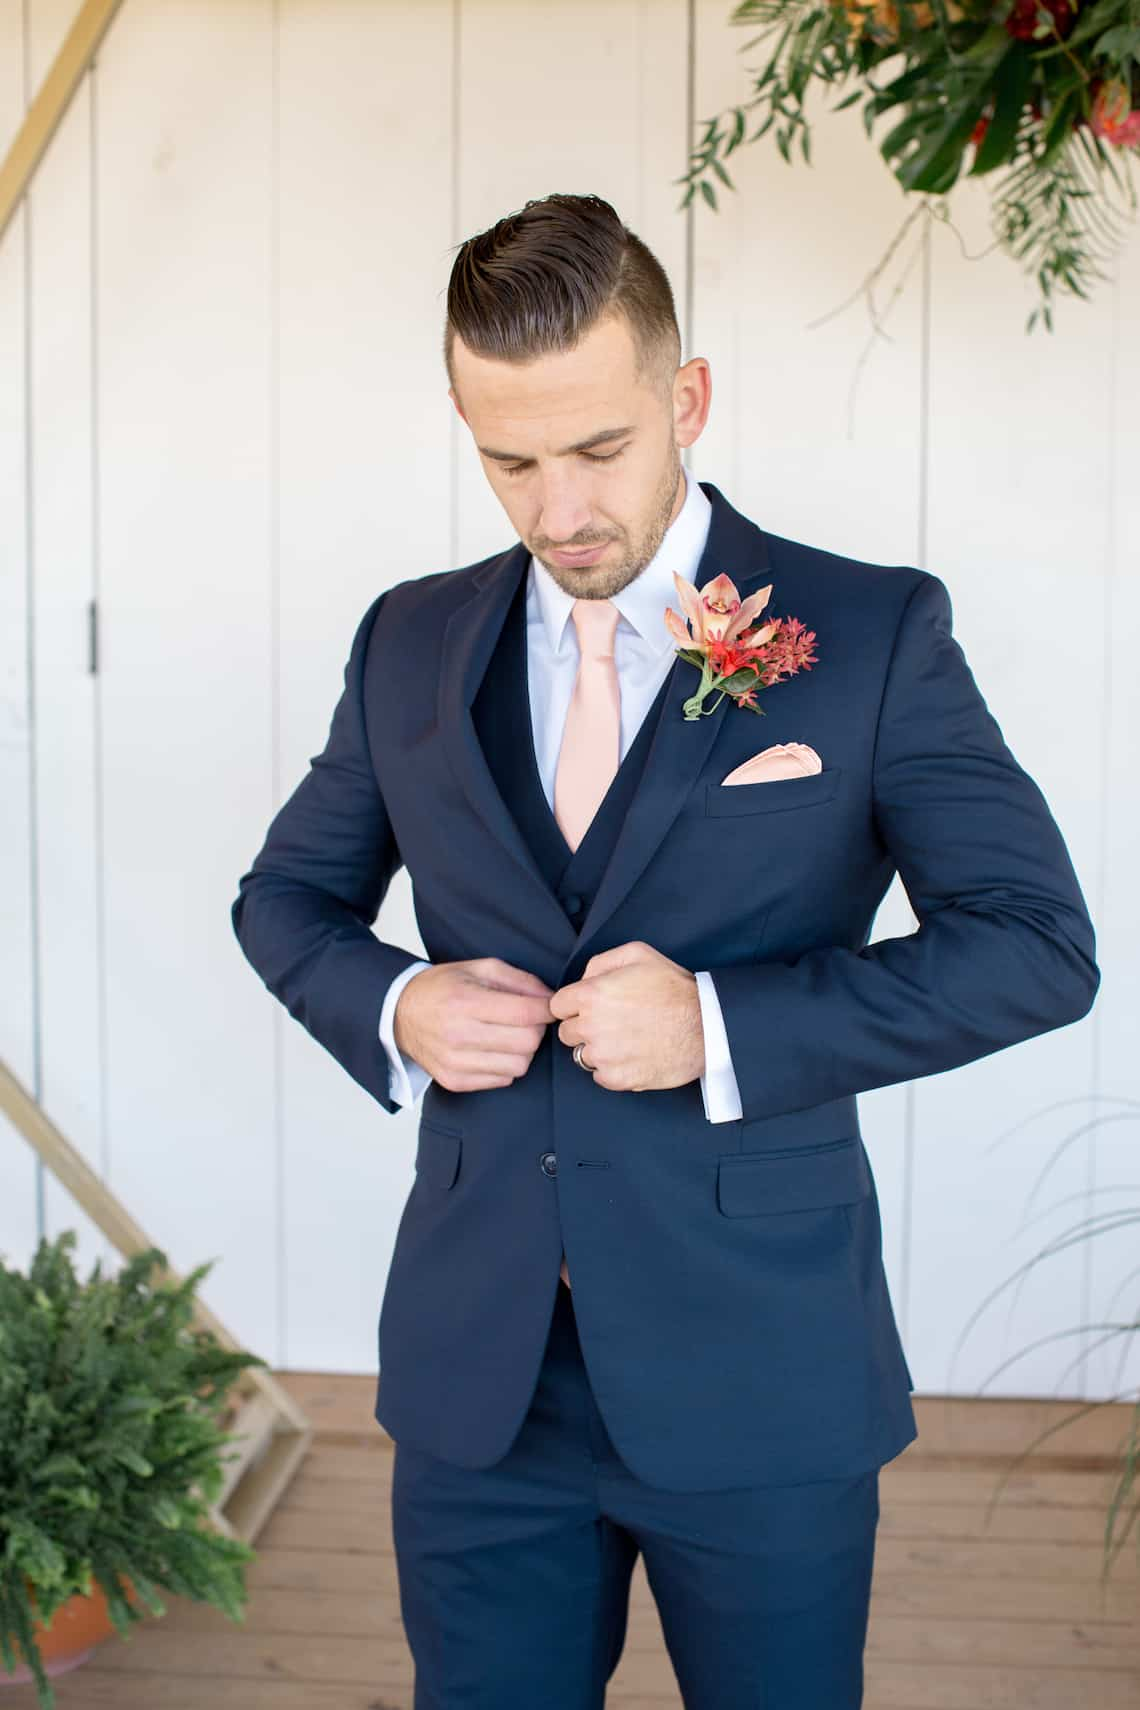 Groom Buttoning Navy Suit with Pastel Orange Tie